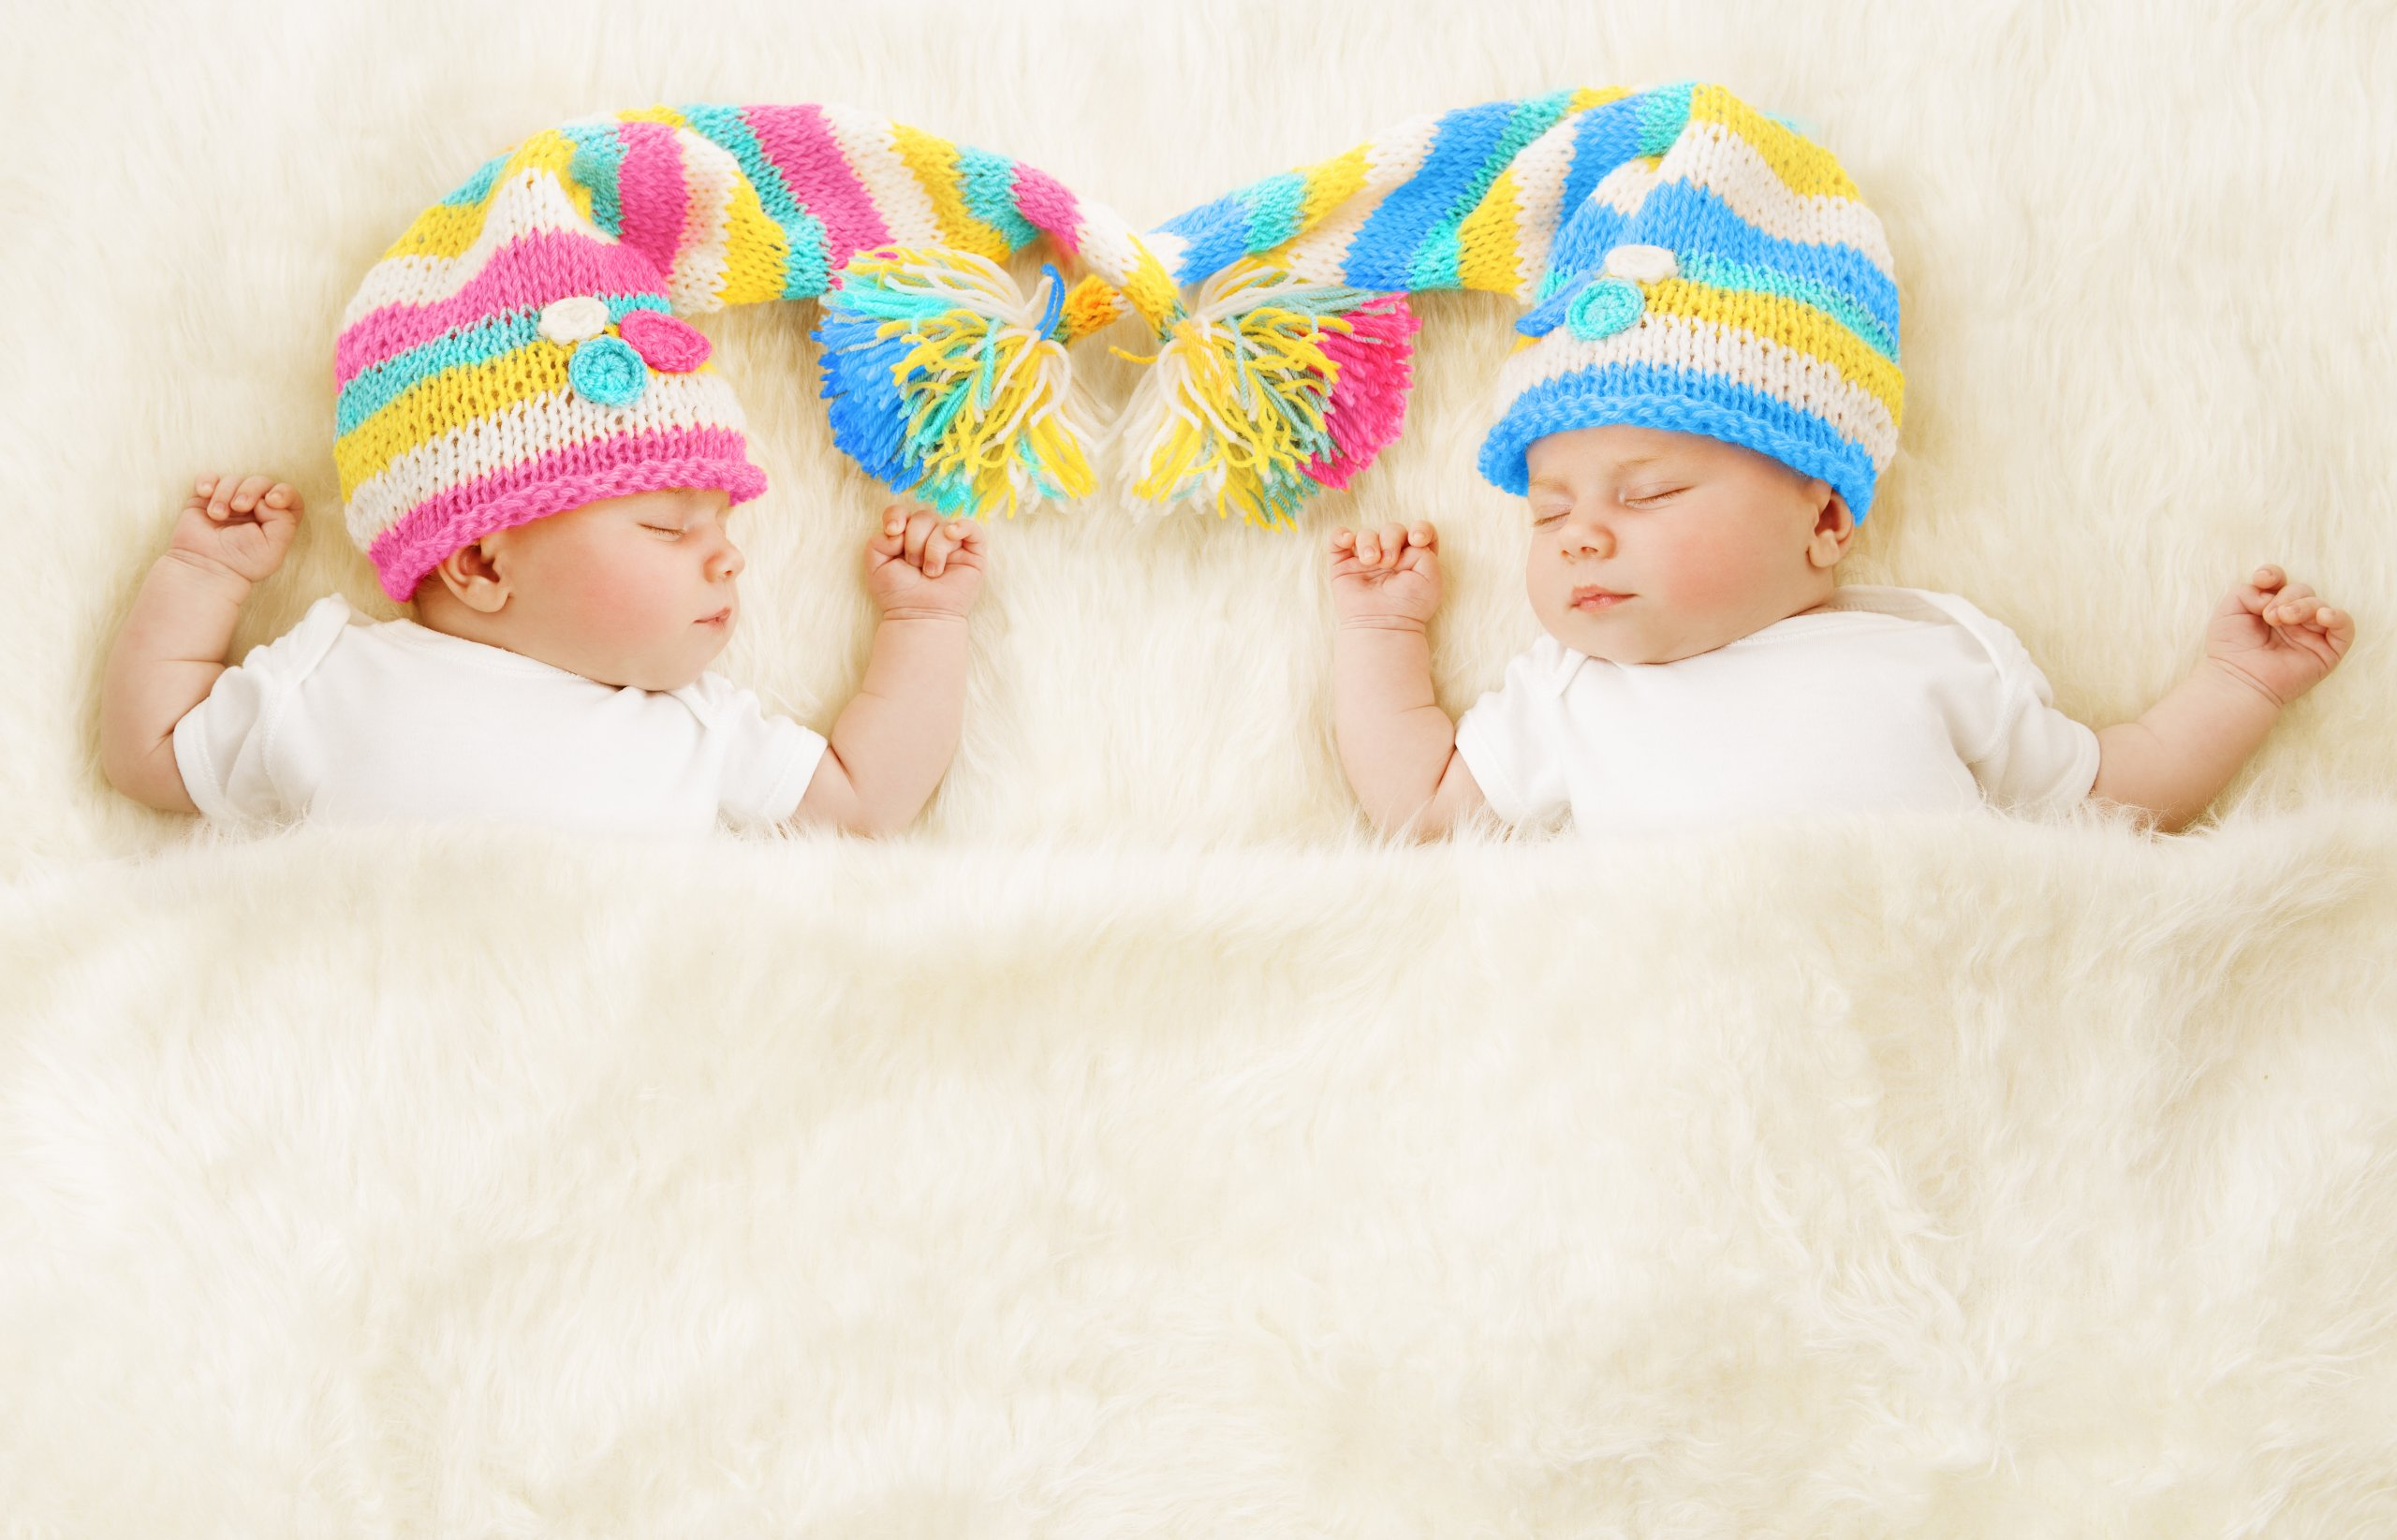 cute twin babies in knitted hats asleep